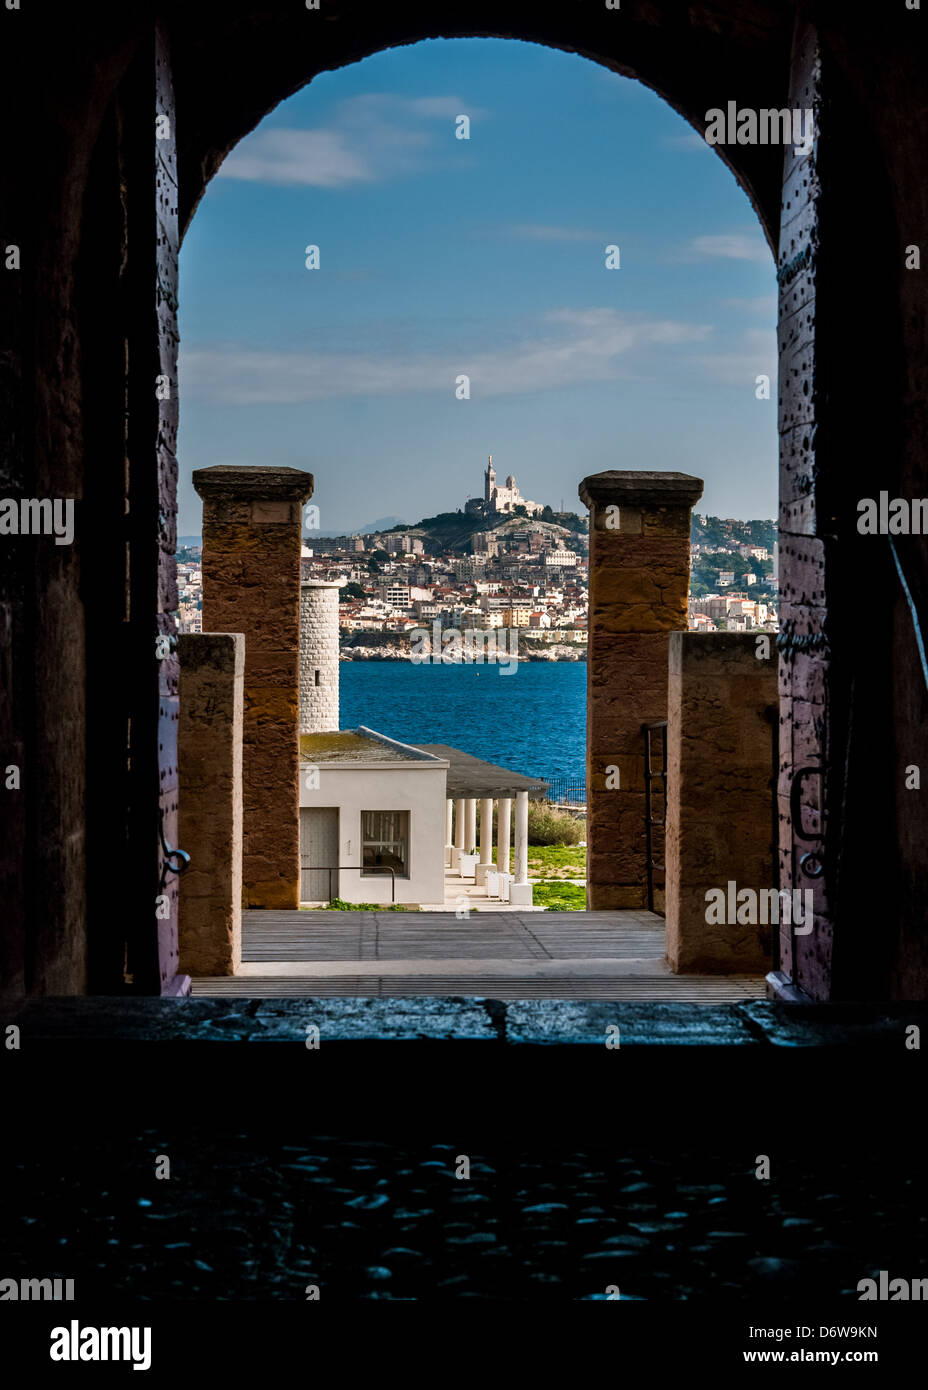 Marseille - France: Chateau D'If - architectural detail with Marseille chathedral in the background - Stock Image